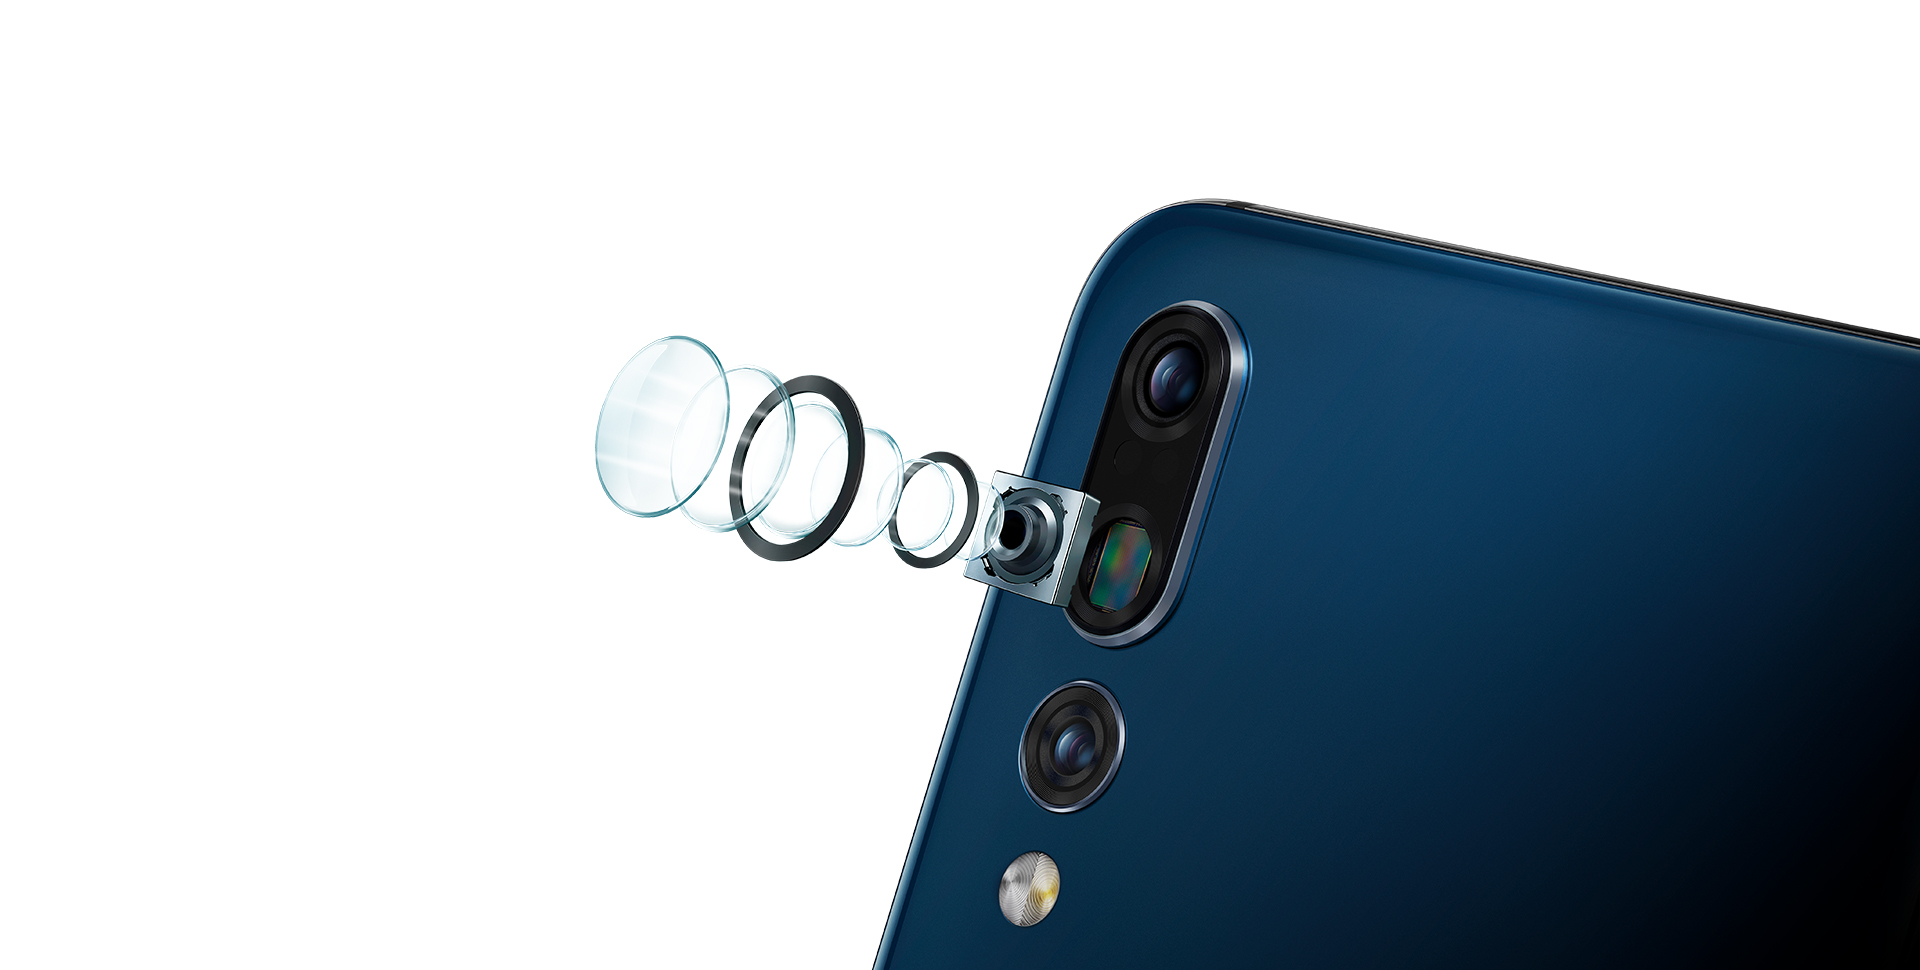 https://consumer-img.huawei.com/content/dam/huawei-cbg-site/common/mkt/pdp/phones/p20-pro-update1/img/camera/huawei-p20-pro-lecia-triple-camera-40-million-pixels-original.jpg